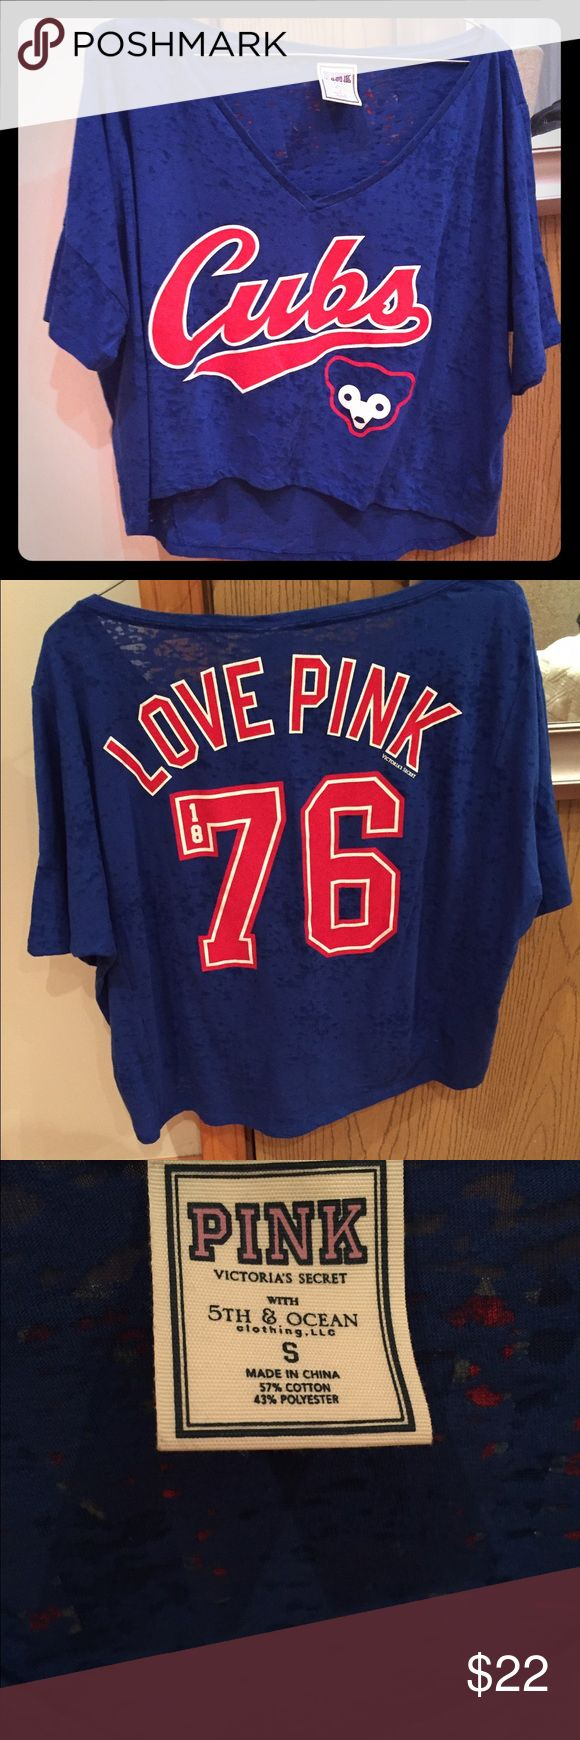 VS PINK CHICAGO CROP TOP This crop top is fairly long (covers up belly button) It is perfect for spring and summer. The cubs just won the world series and this would be the perfect addition to your closet. Please comment with questions! PINK Victoria's Secret Tops Crop Tops